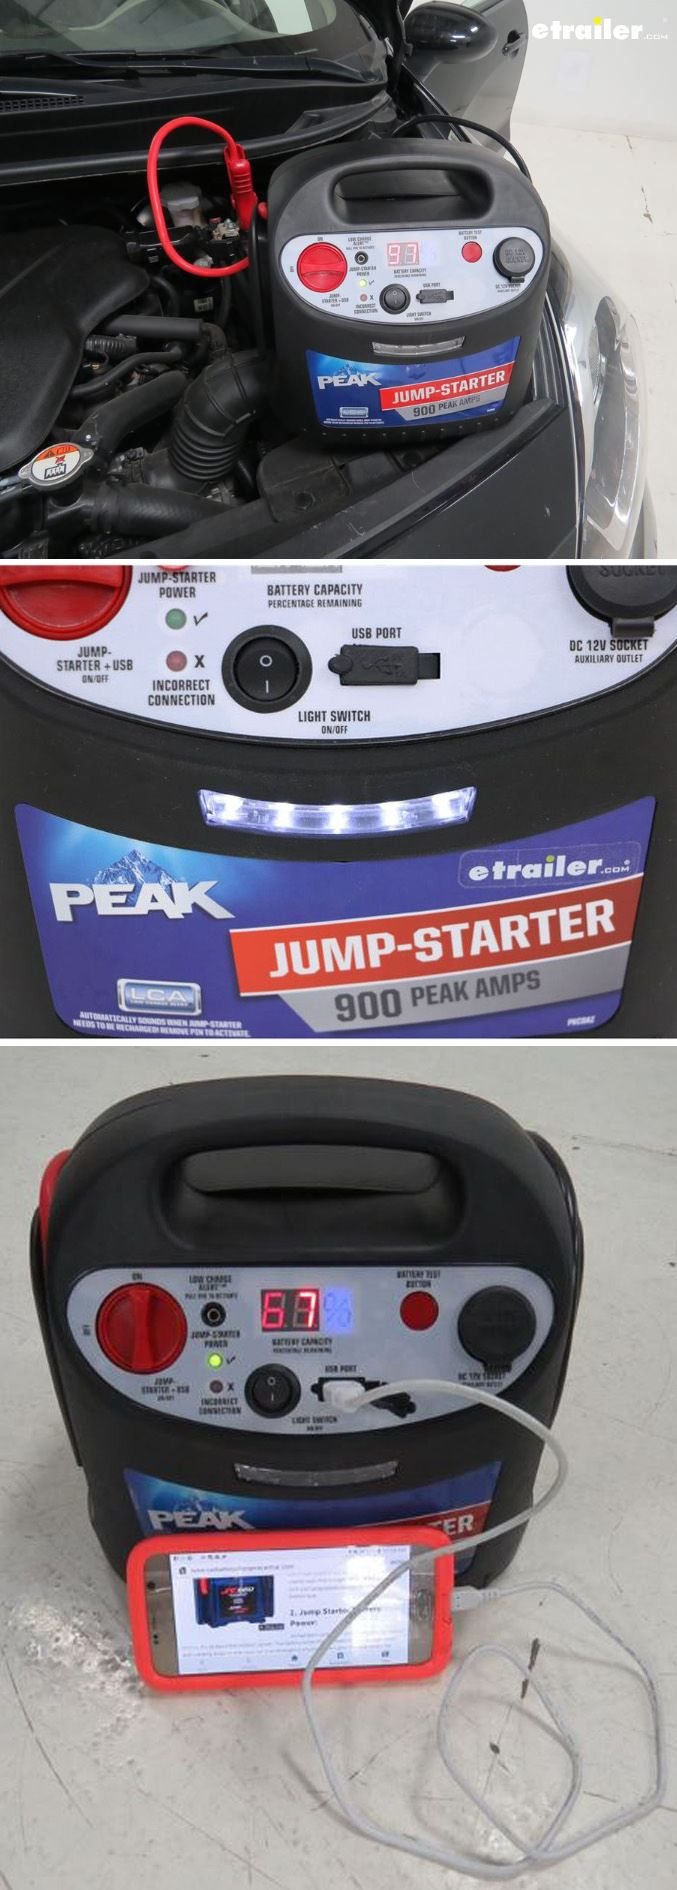 This 900-amp jump starter allows you to jump-start your own battery, meaning there's no need to wait on others anymore. Whether you're in your daily ride or weekend play toy, the jump starter will get you up and running in no time. And for those on the go, an integrated 1-amp USB port and 12V DC outlet will give your electronic devices a boost in a pinch.